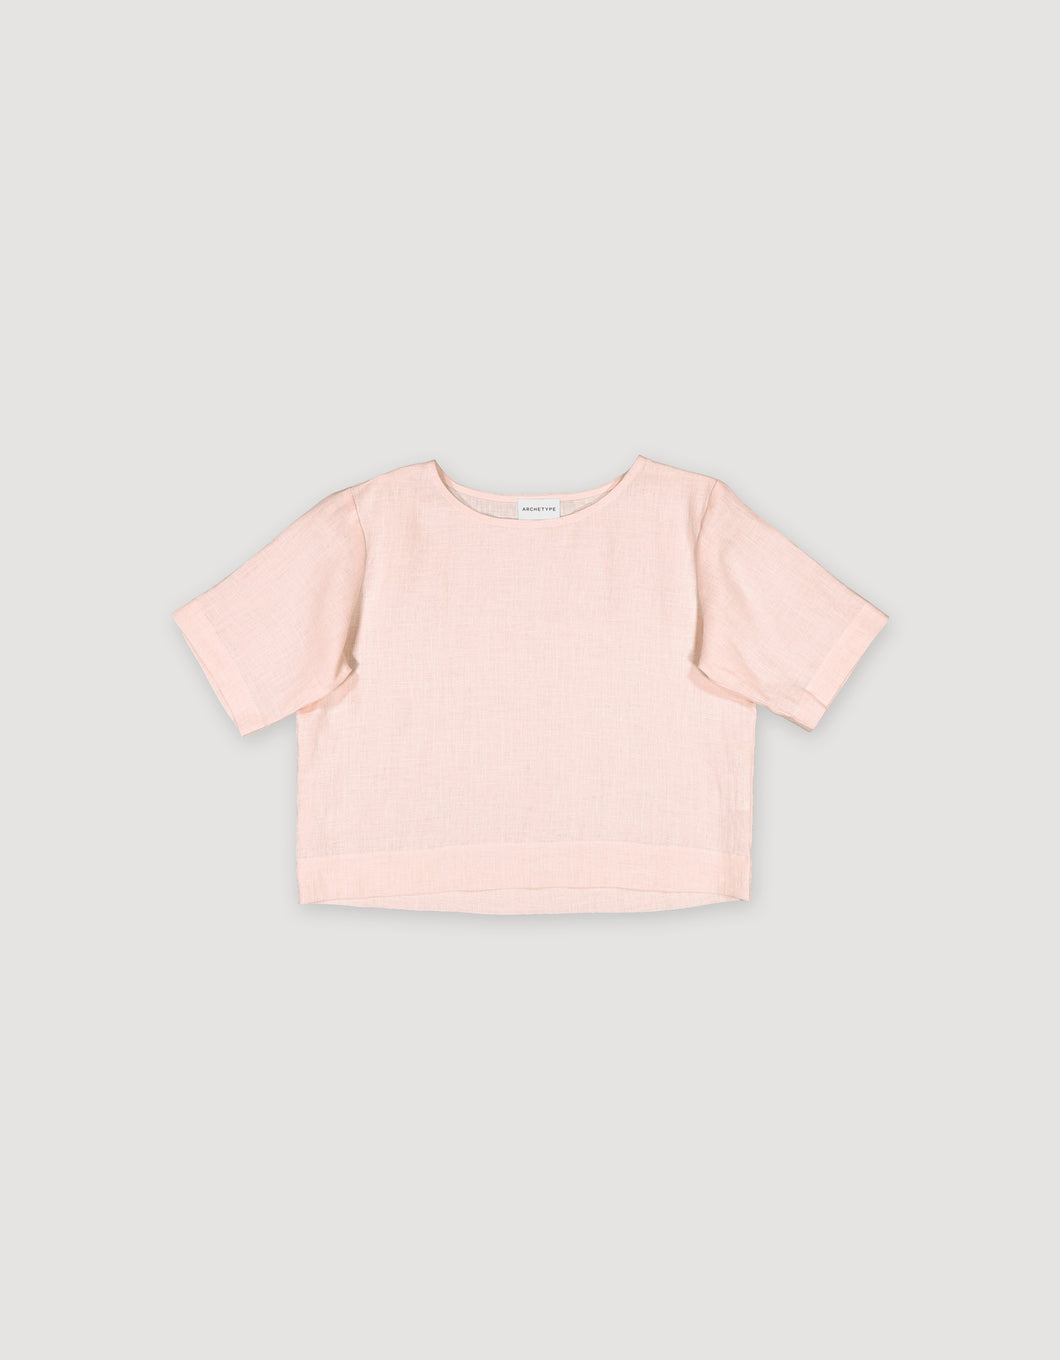 CROPPED SHIRT (FADED PINK)